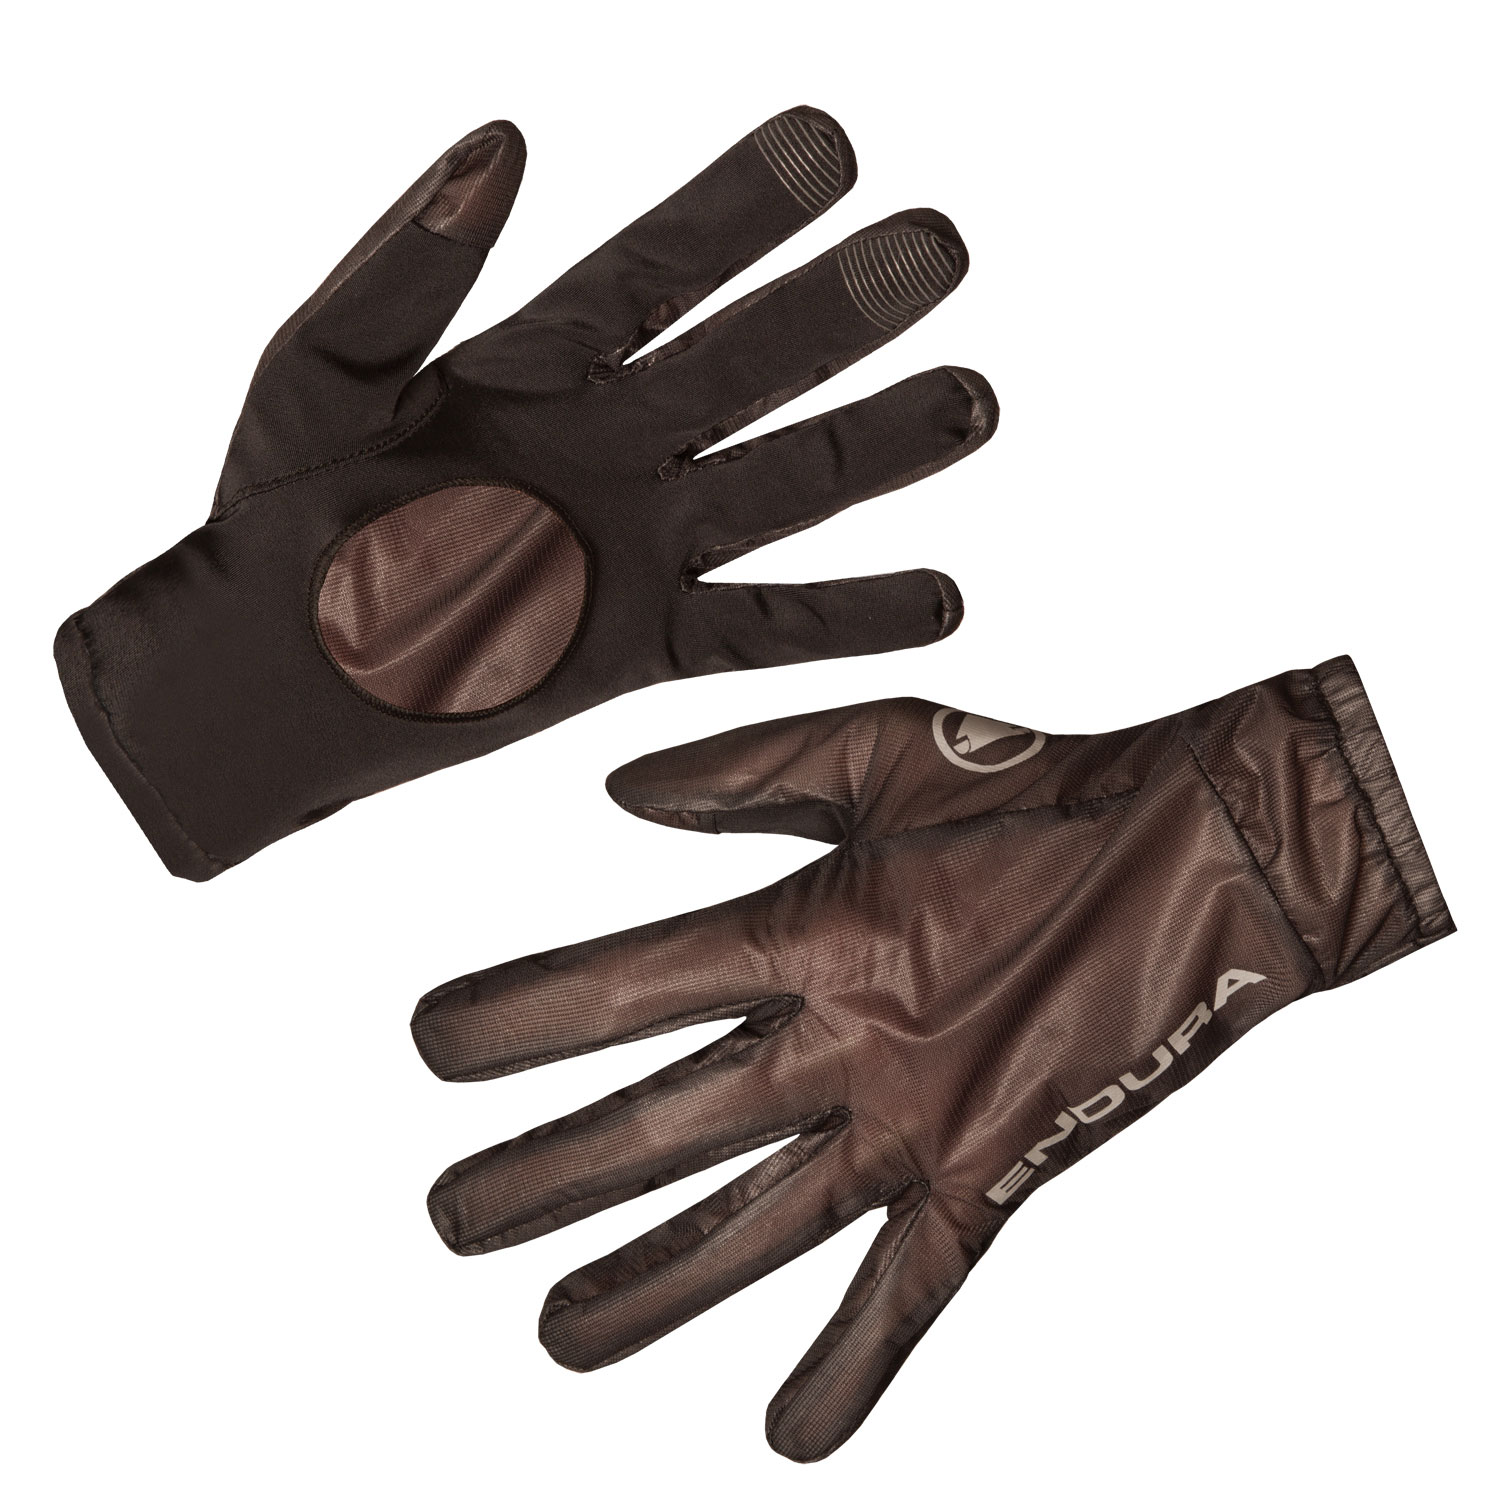 Adrenaline Shell Glove Black